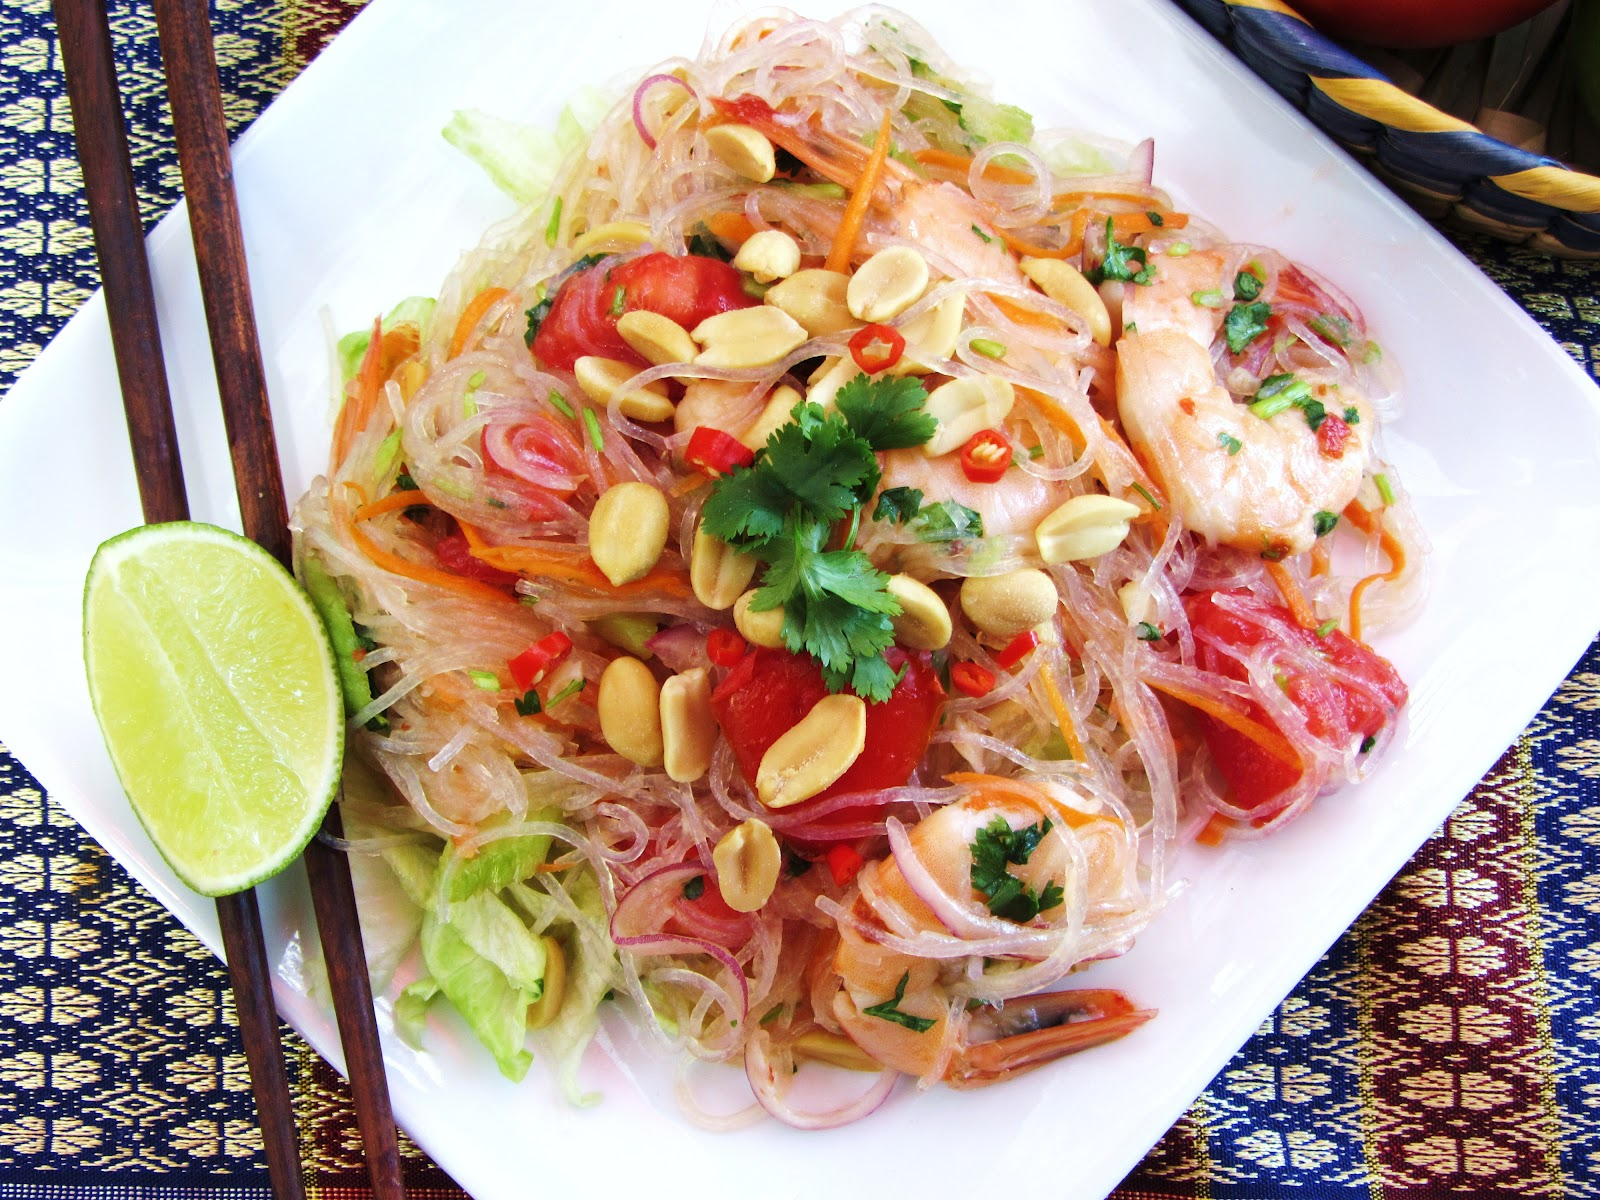 ... simple!: Yum-Woon-Sen Goong /Thai Spicy Glass Noodle Salad with Shrimp